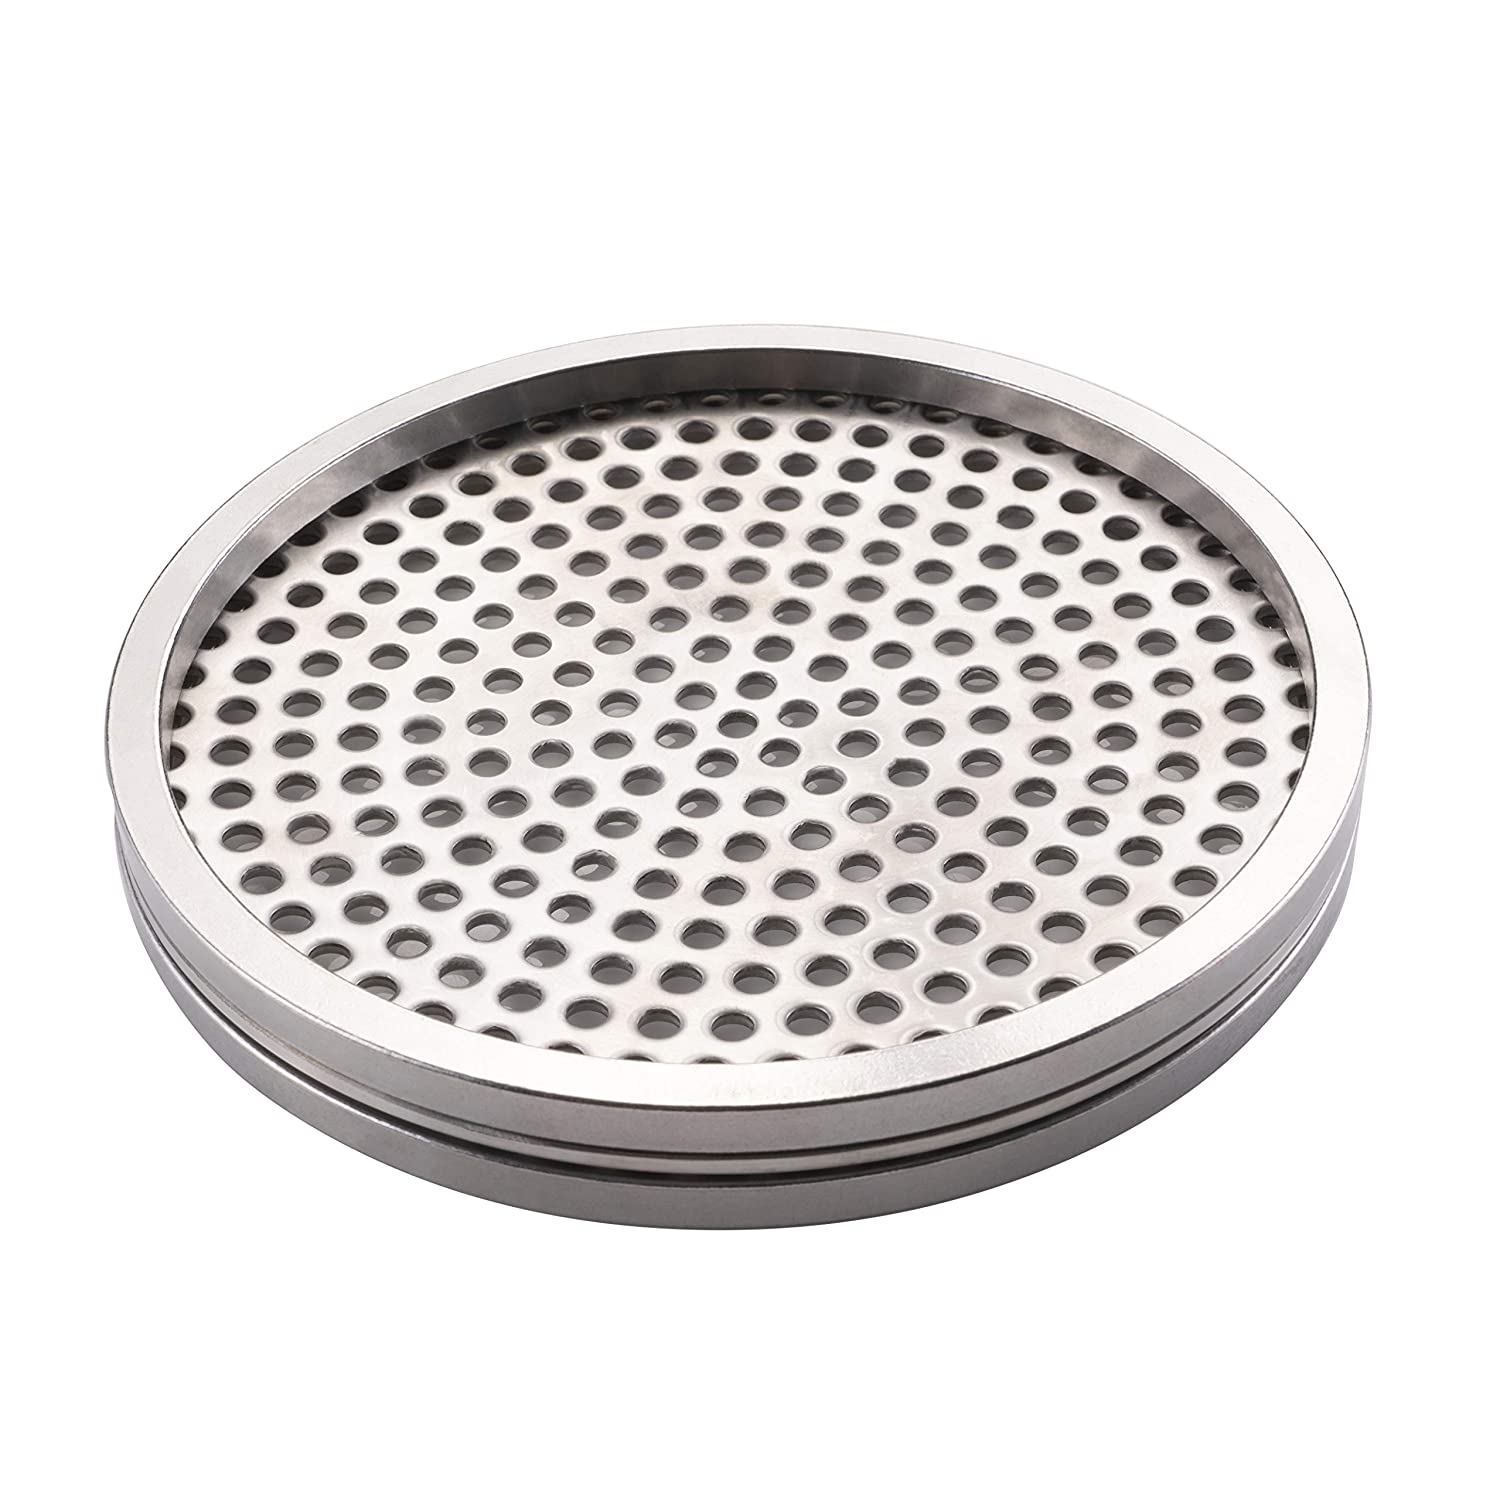 Stainless Steel Millennium Filters WIX MN-R77D60BB Direct Interchange for WIX-R77D60BB